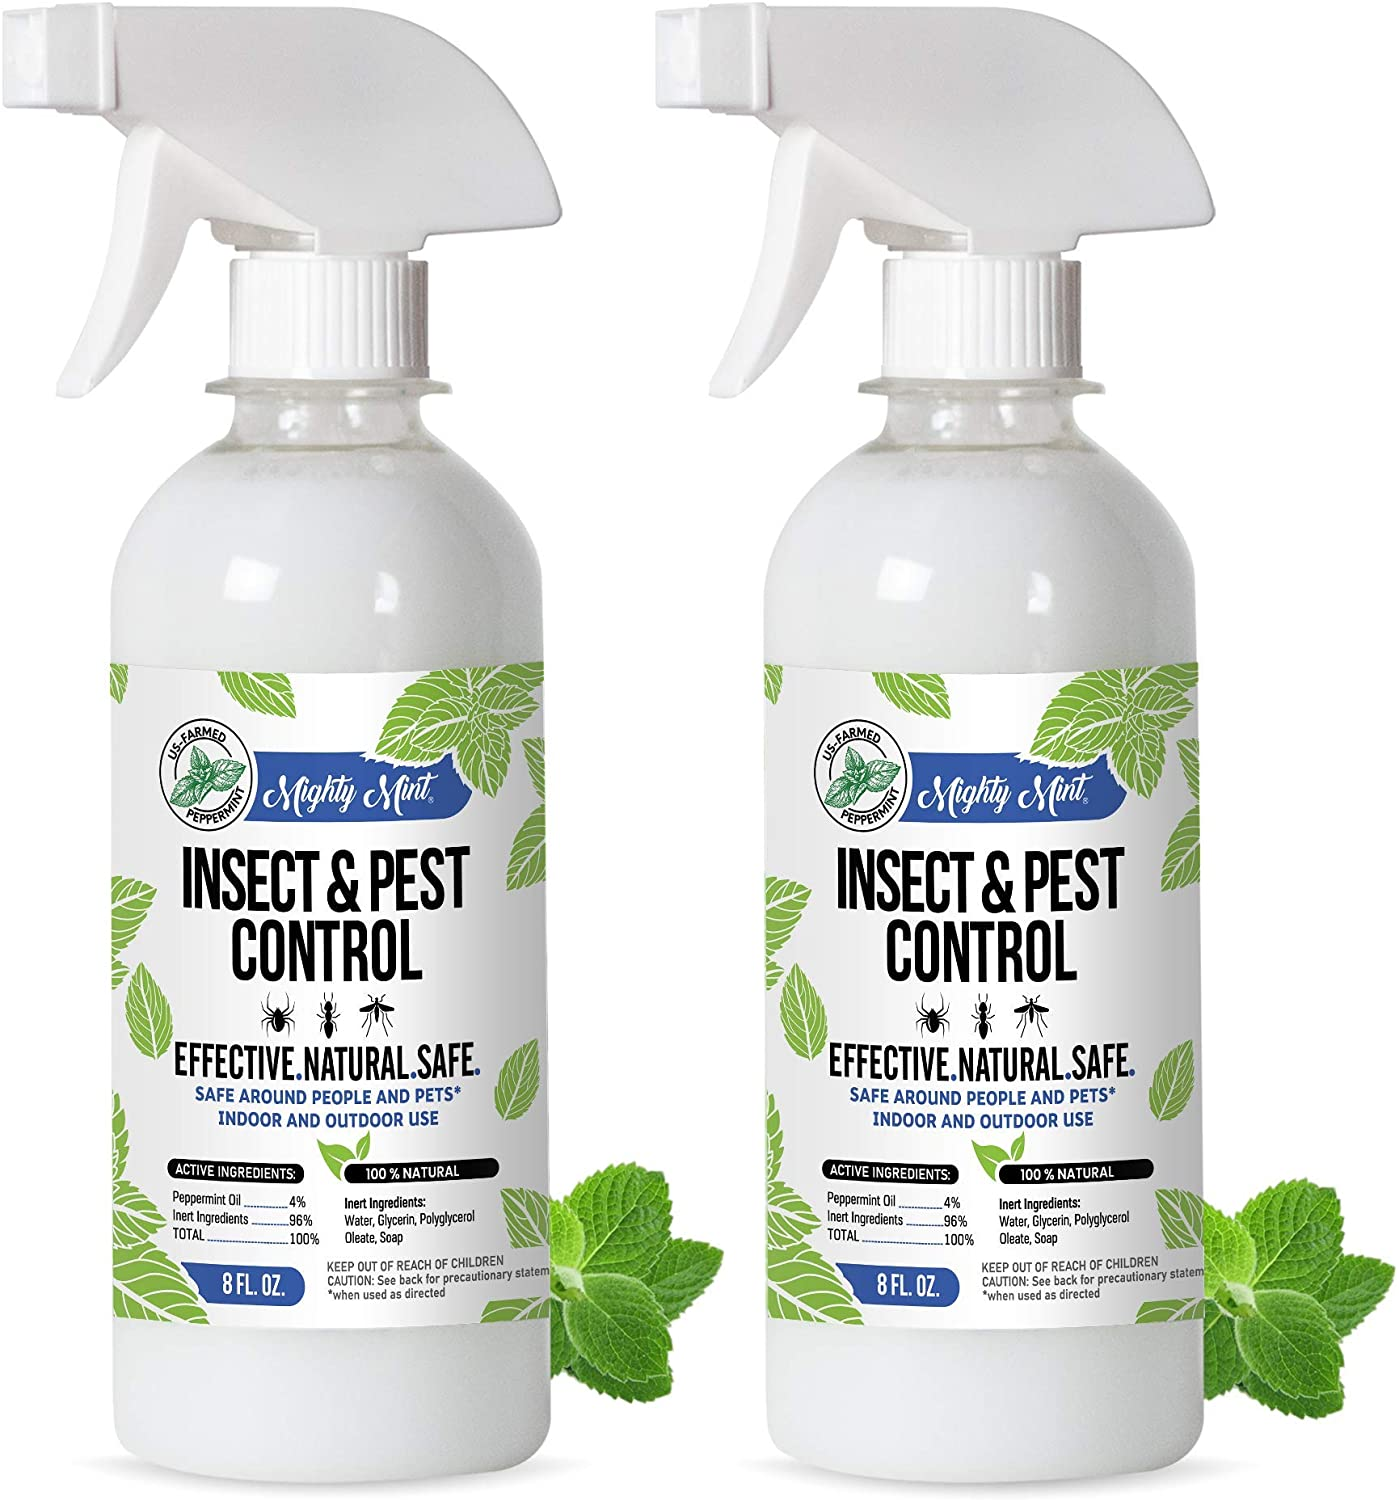 Mighty Mint 8oz Insect and Pest Control Peppermint Oil - Natural Spray for Spiders, Ants, and More - Non-Toxic (2)